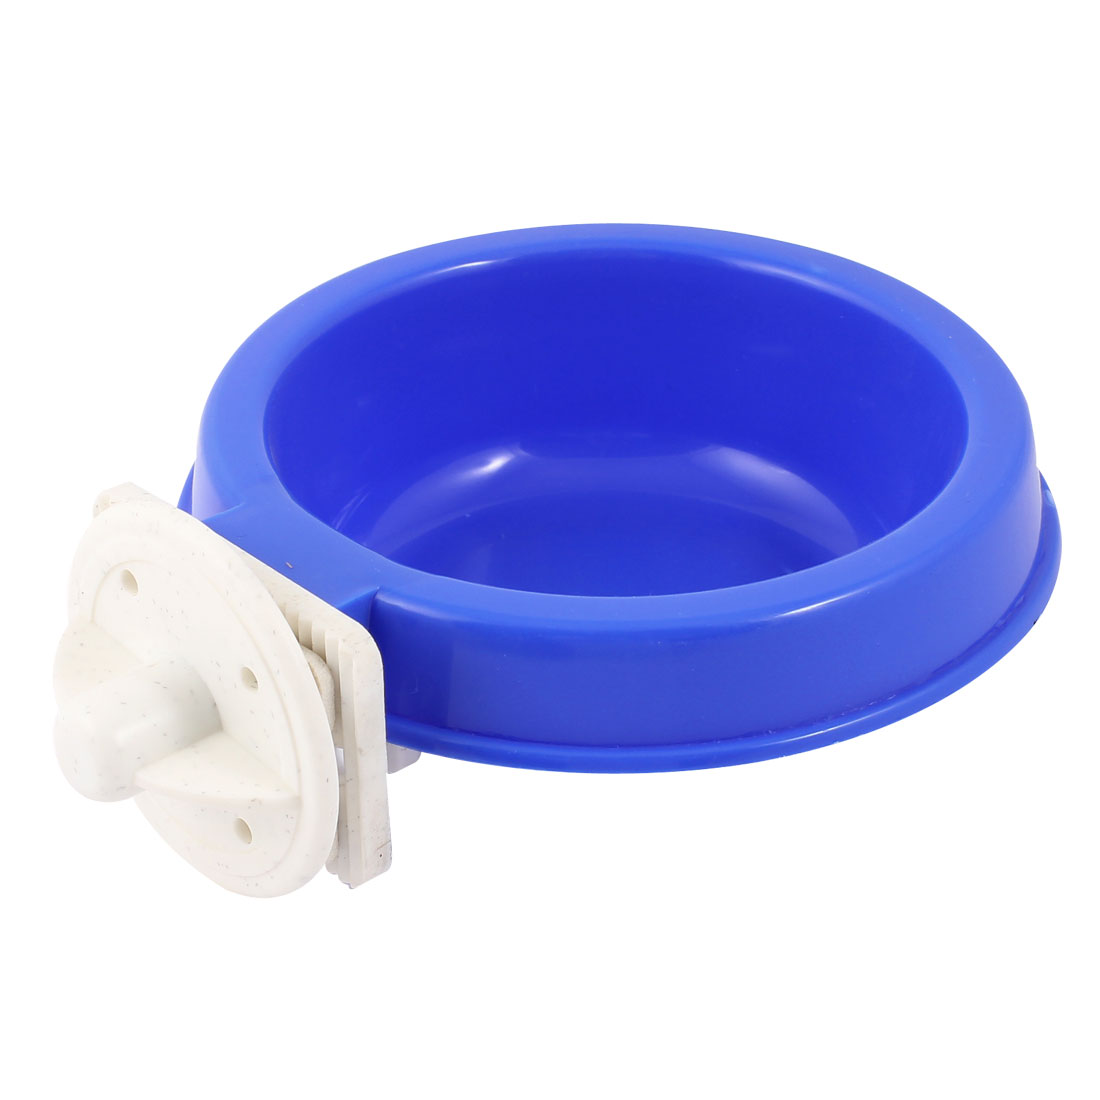 "4"" Dia 1.6"" Depth Puppy Dog Cat Pet Outdoor Cage Fixed Hanging Plastic Feed Bowl Round Shape Dinner Food Water Feeder Blue"